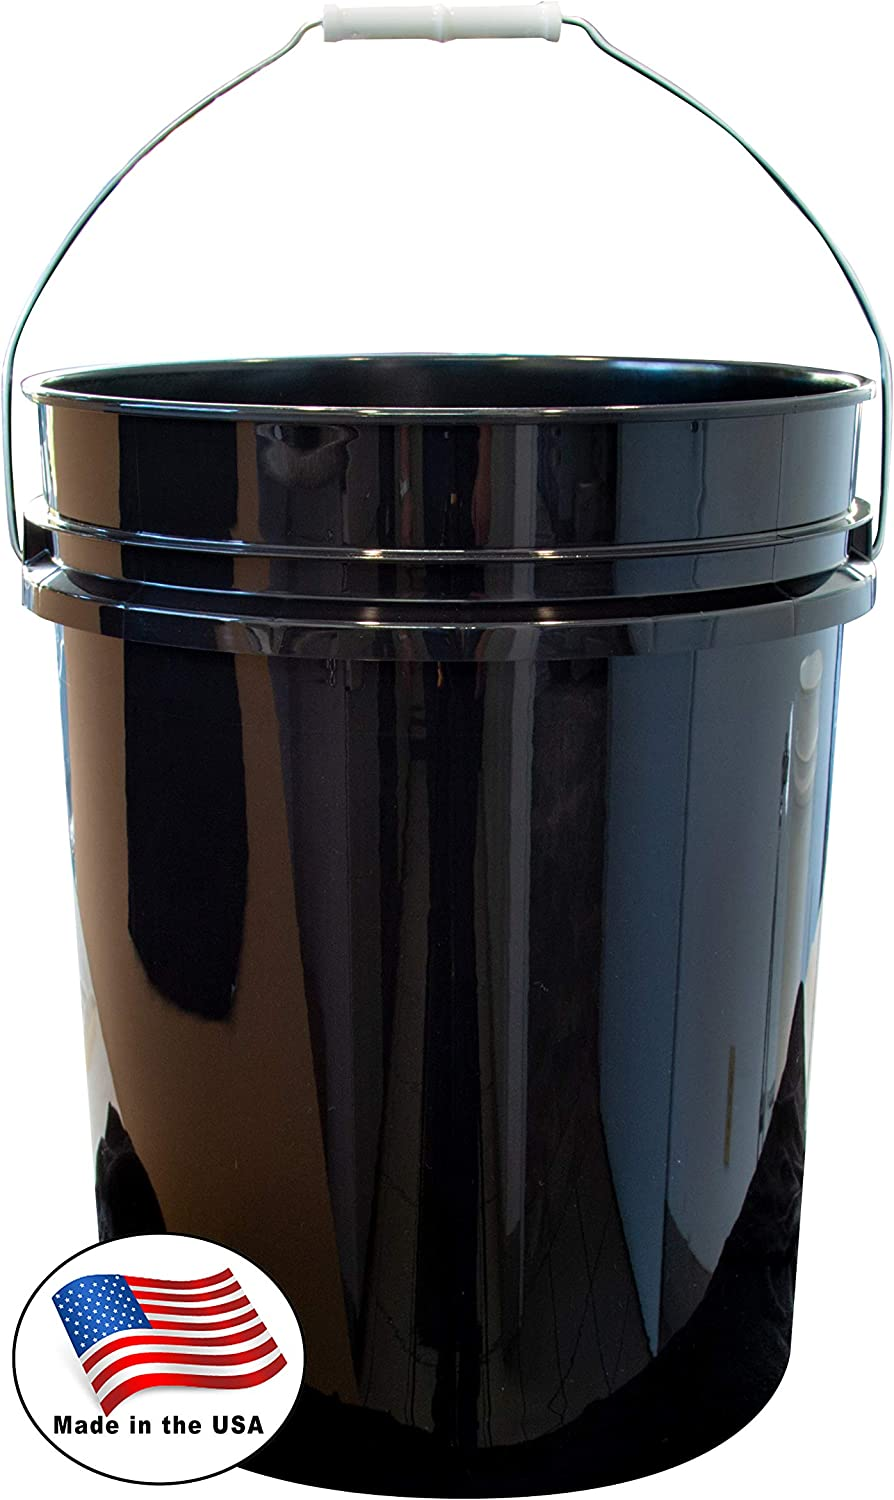 Argee RG5500BK/10 Plastic Bucket, 5 gallon, Black, 10 Pack